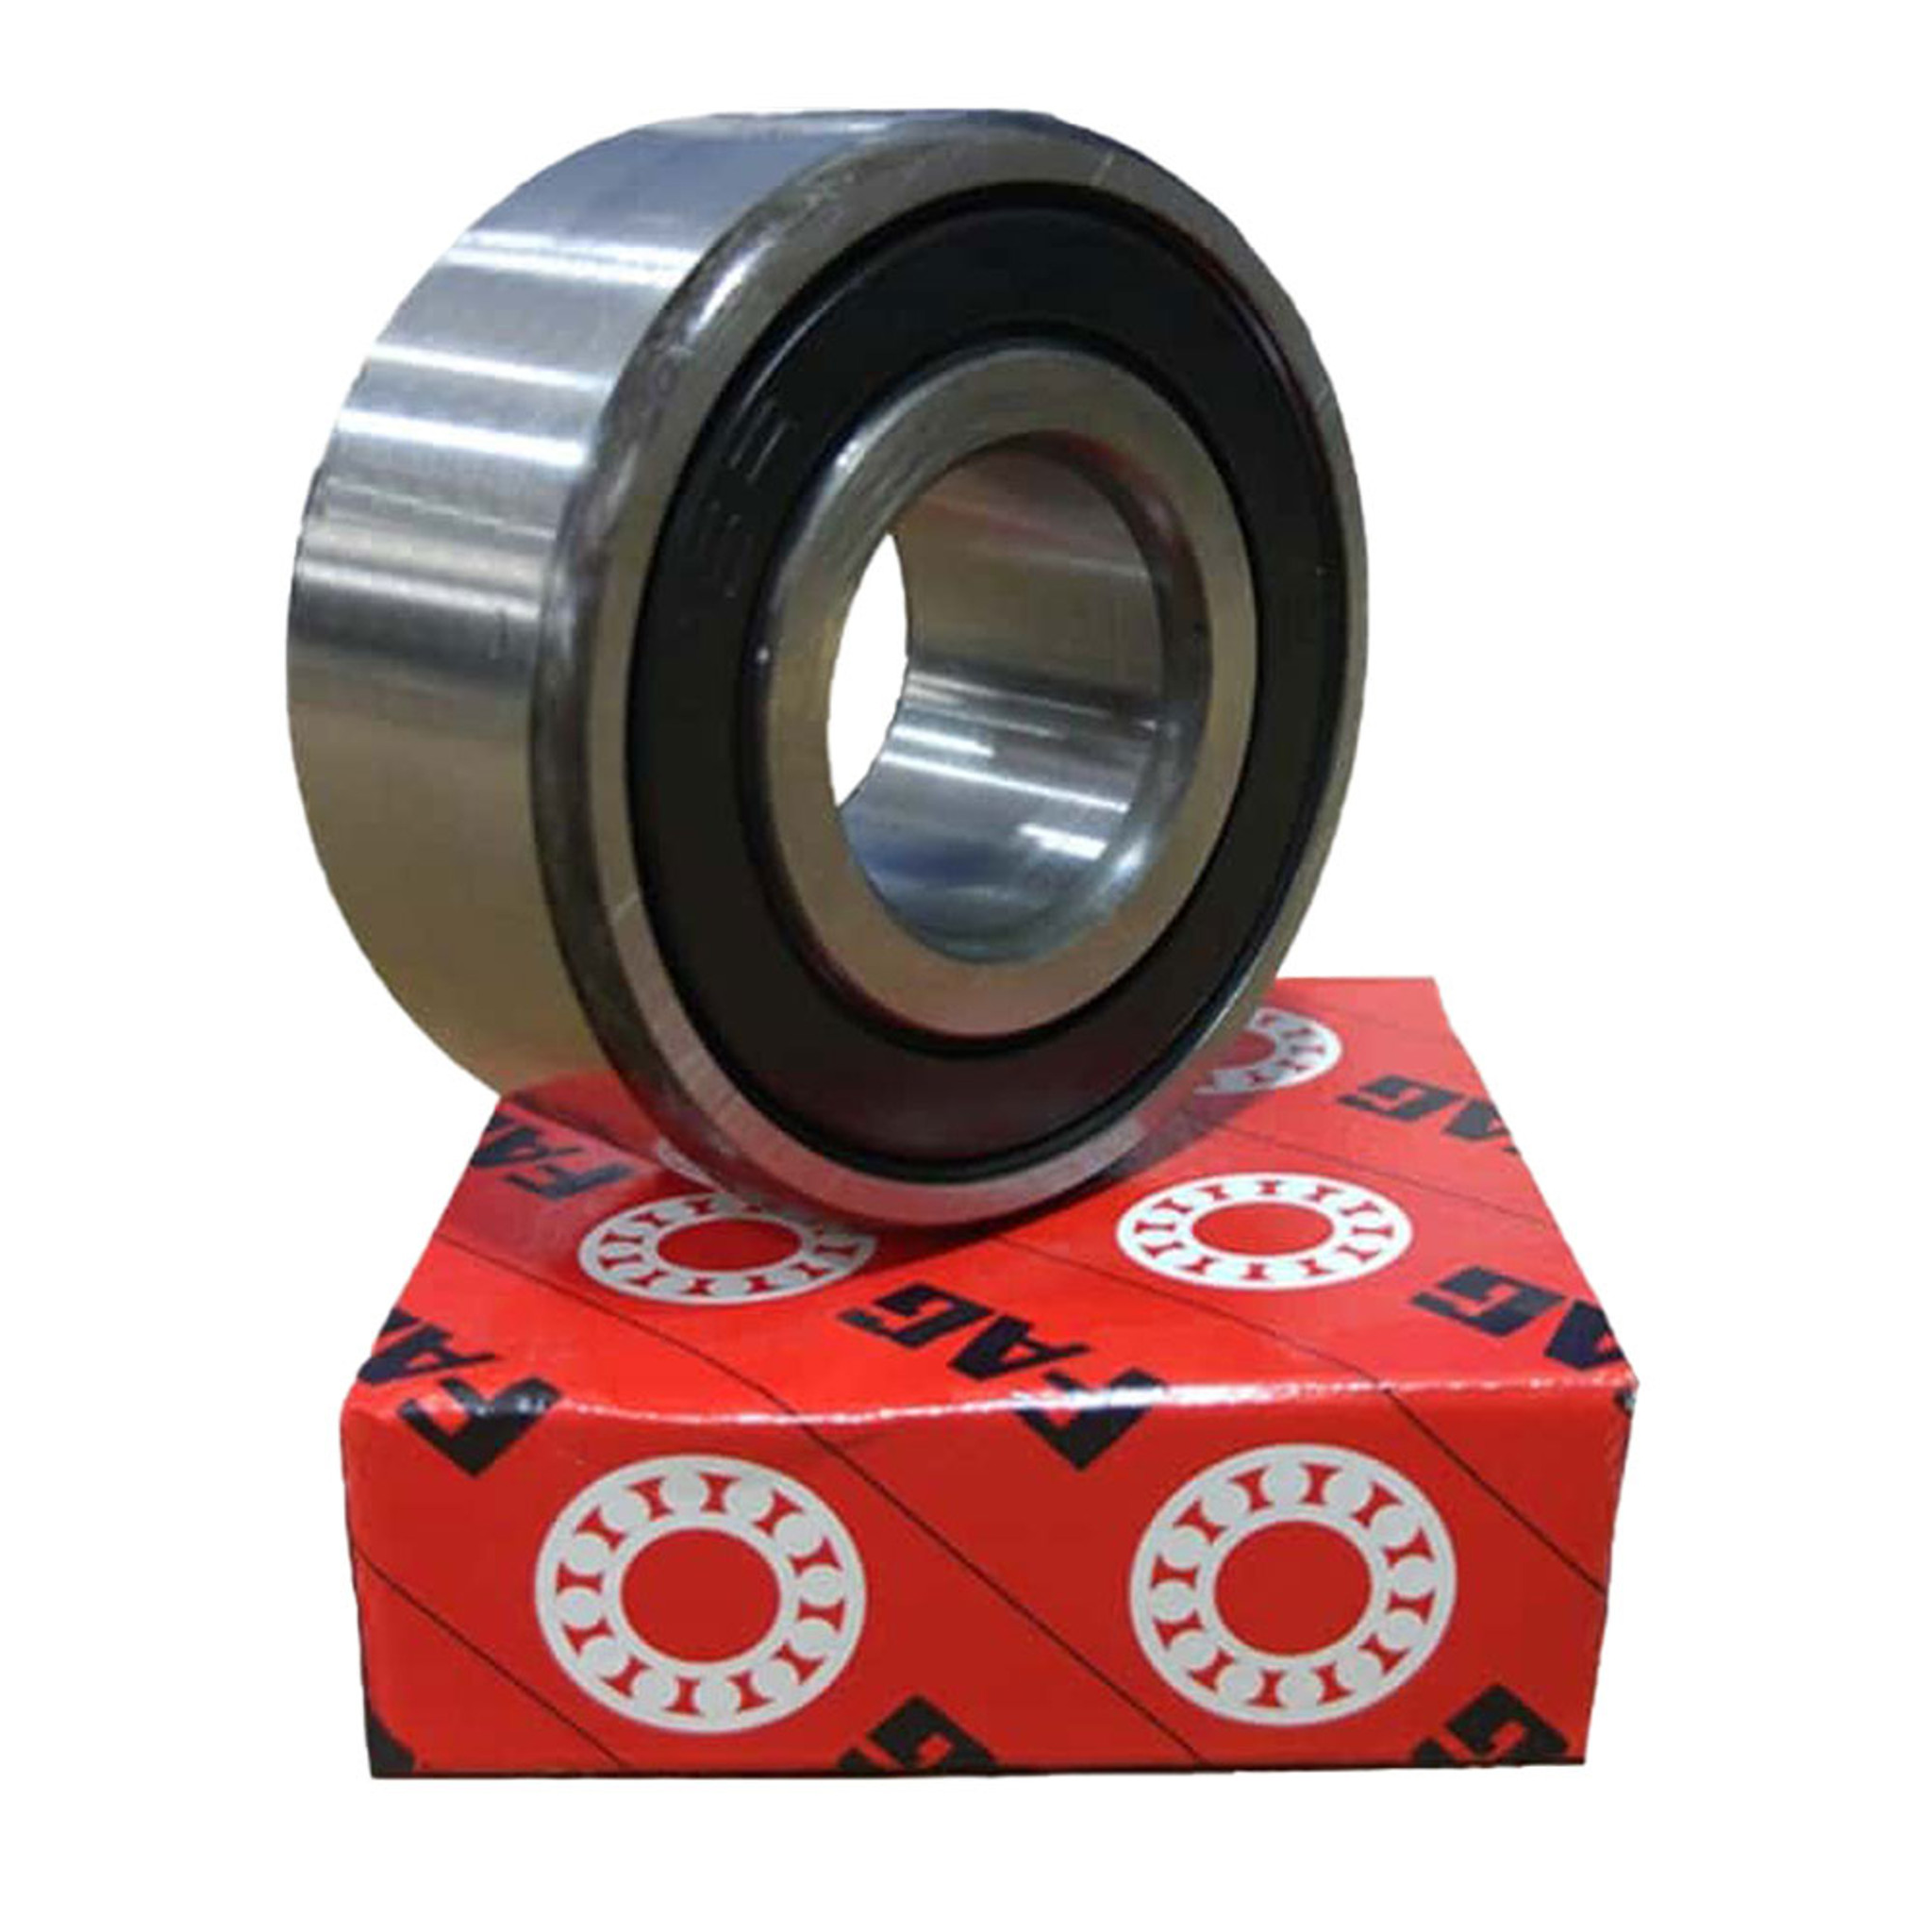 FAG 2309-2RS-TVH Self-aligning Ball Bearings Double Row 45x100x36mm